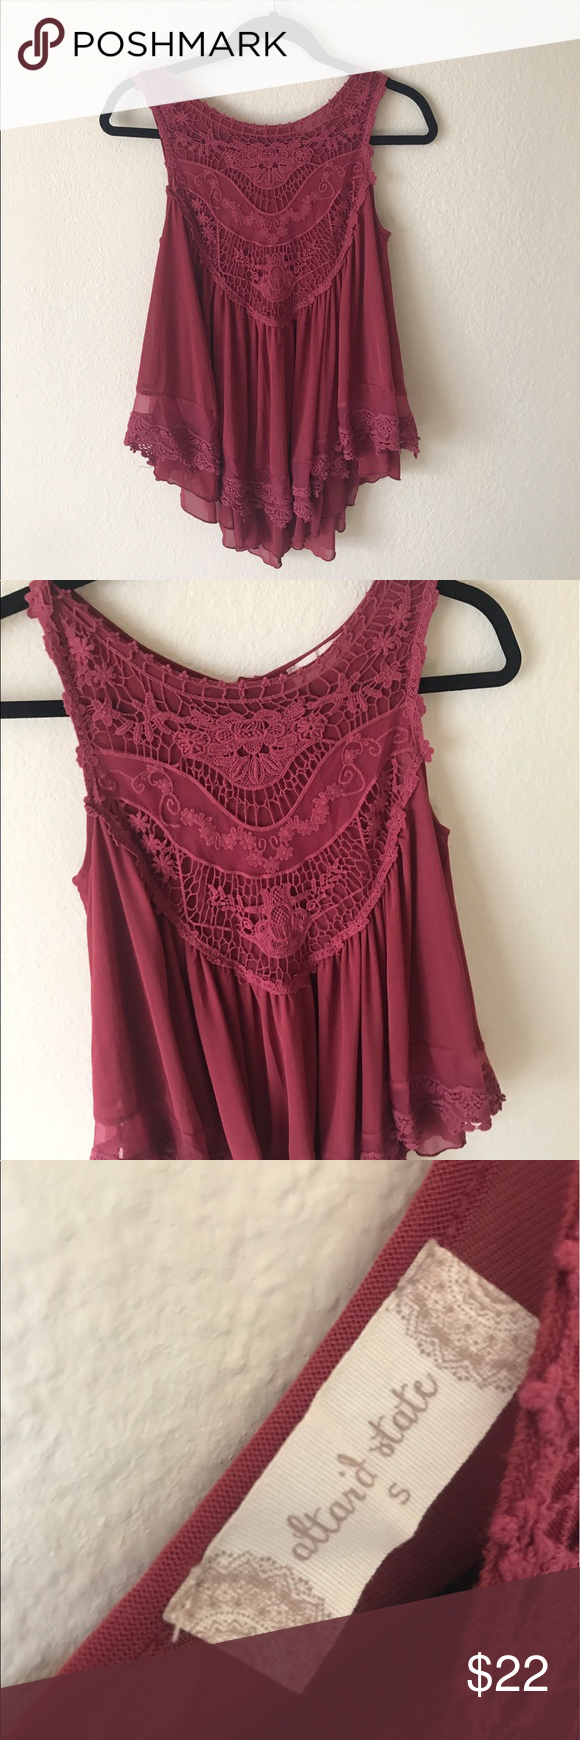 Mauve pink blouse this is from altrd state and is really cute and i